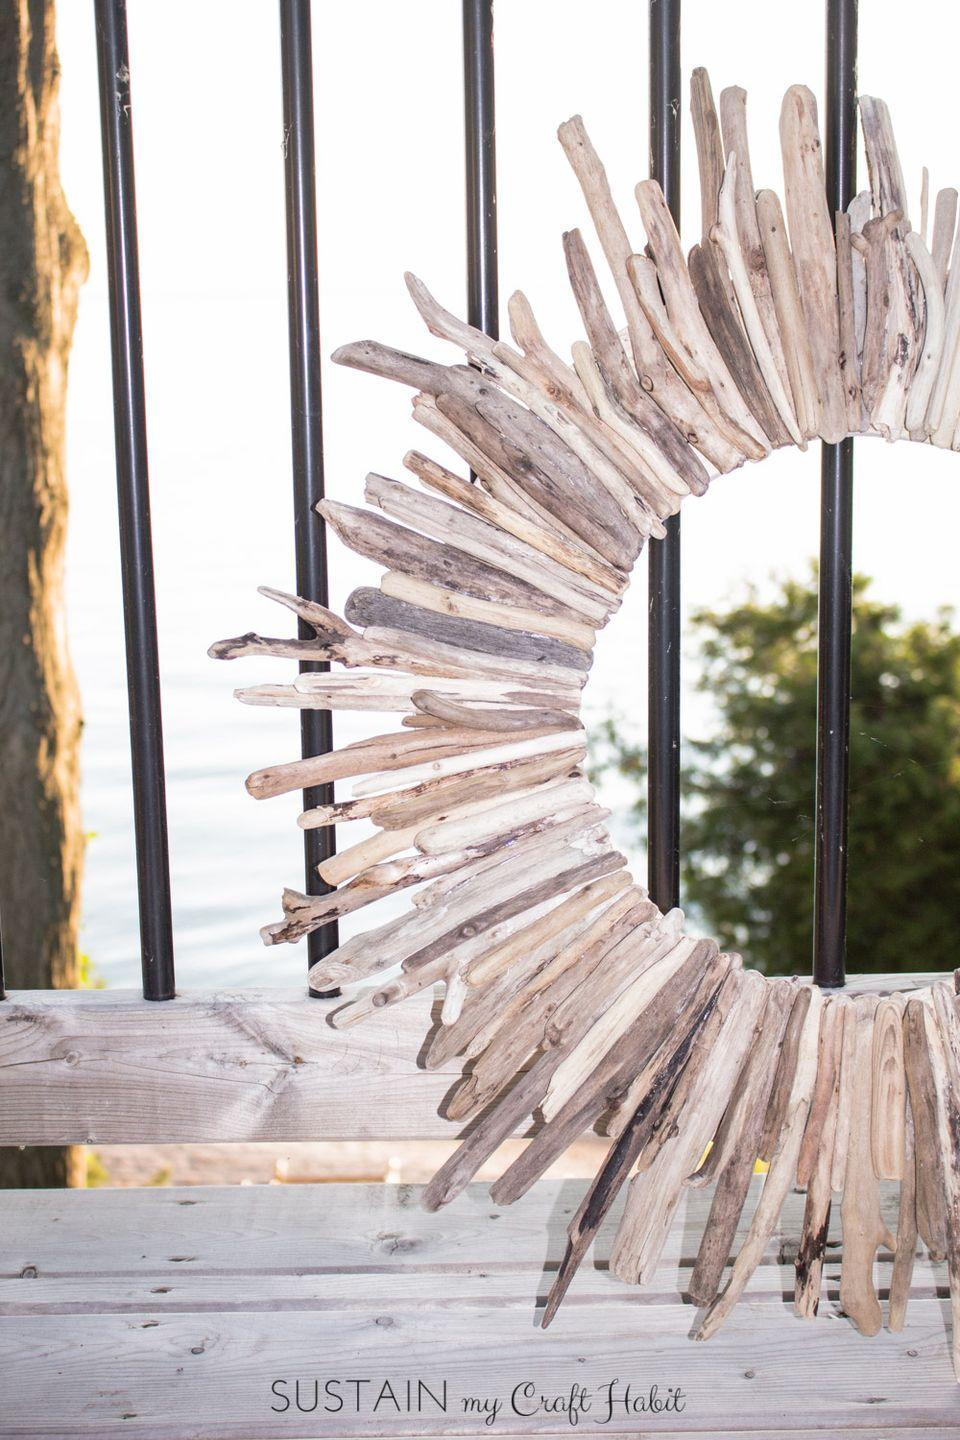 "<p>Always gathering driftwood during your beach vacations? Turn your collection into a DIY wreath!</p><p><strong>Get the tutorial at <a href=""https://www.sustainmycrafthabit.com/blog/2016/6/22/how-to-make-a-diy-driftwood-wreath?rq=wreath"" rel=""nofollow noopener"" target=""_blank"" data-ylk=""slk:Sustain My Craft Habit"" class=""link rapid-noclick-resp"">Sustain My Craft Habit</a>. </strong></p><p><a class=""link rapid-noclick-resp"" href=""https://www.amazon.com/Rust-Oleum-1906830-Lacquer-Spray-11-Ounce/dp/B0009XCKGA?tag=syn-yahoo-20&ascsubtag=%5Bartid%7C10050.g.4395%5Bsrc%7Cyahoo-us"" rel=""nofollow noopener"" target=""_blank"" data-ylk=""slk:SHOP CLEAR LACQUER SPRAY"">SHOP CLEAR LACQUER SPRAY</a> </p>"